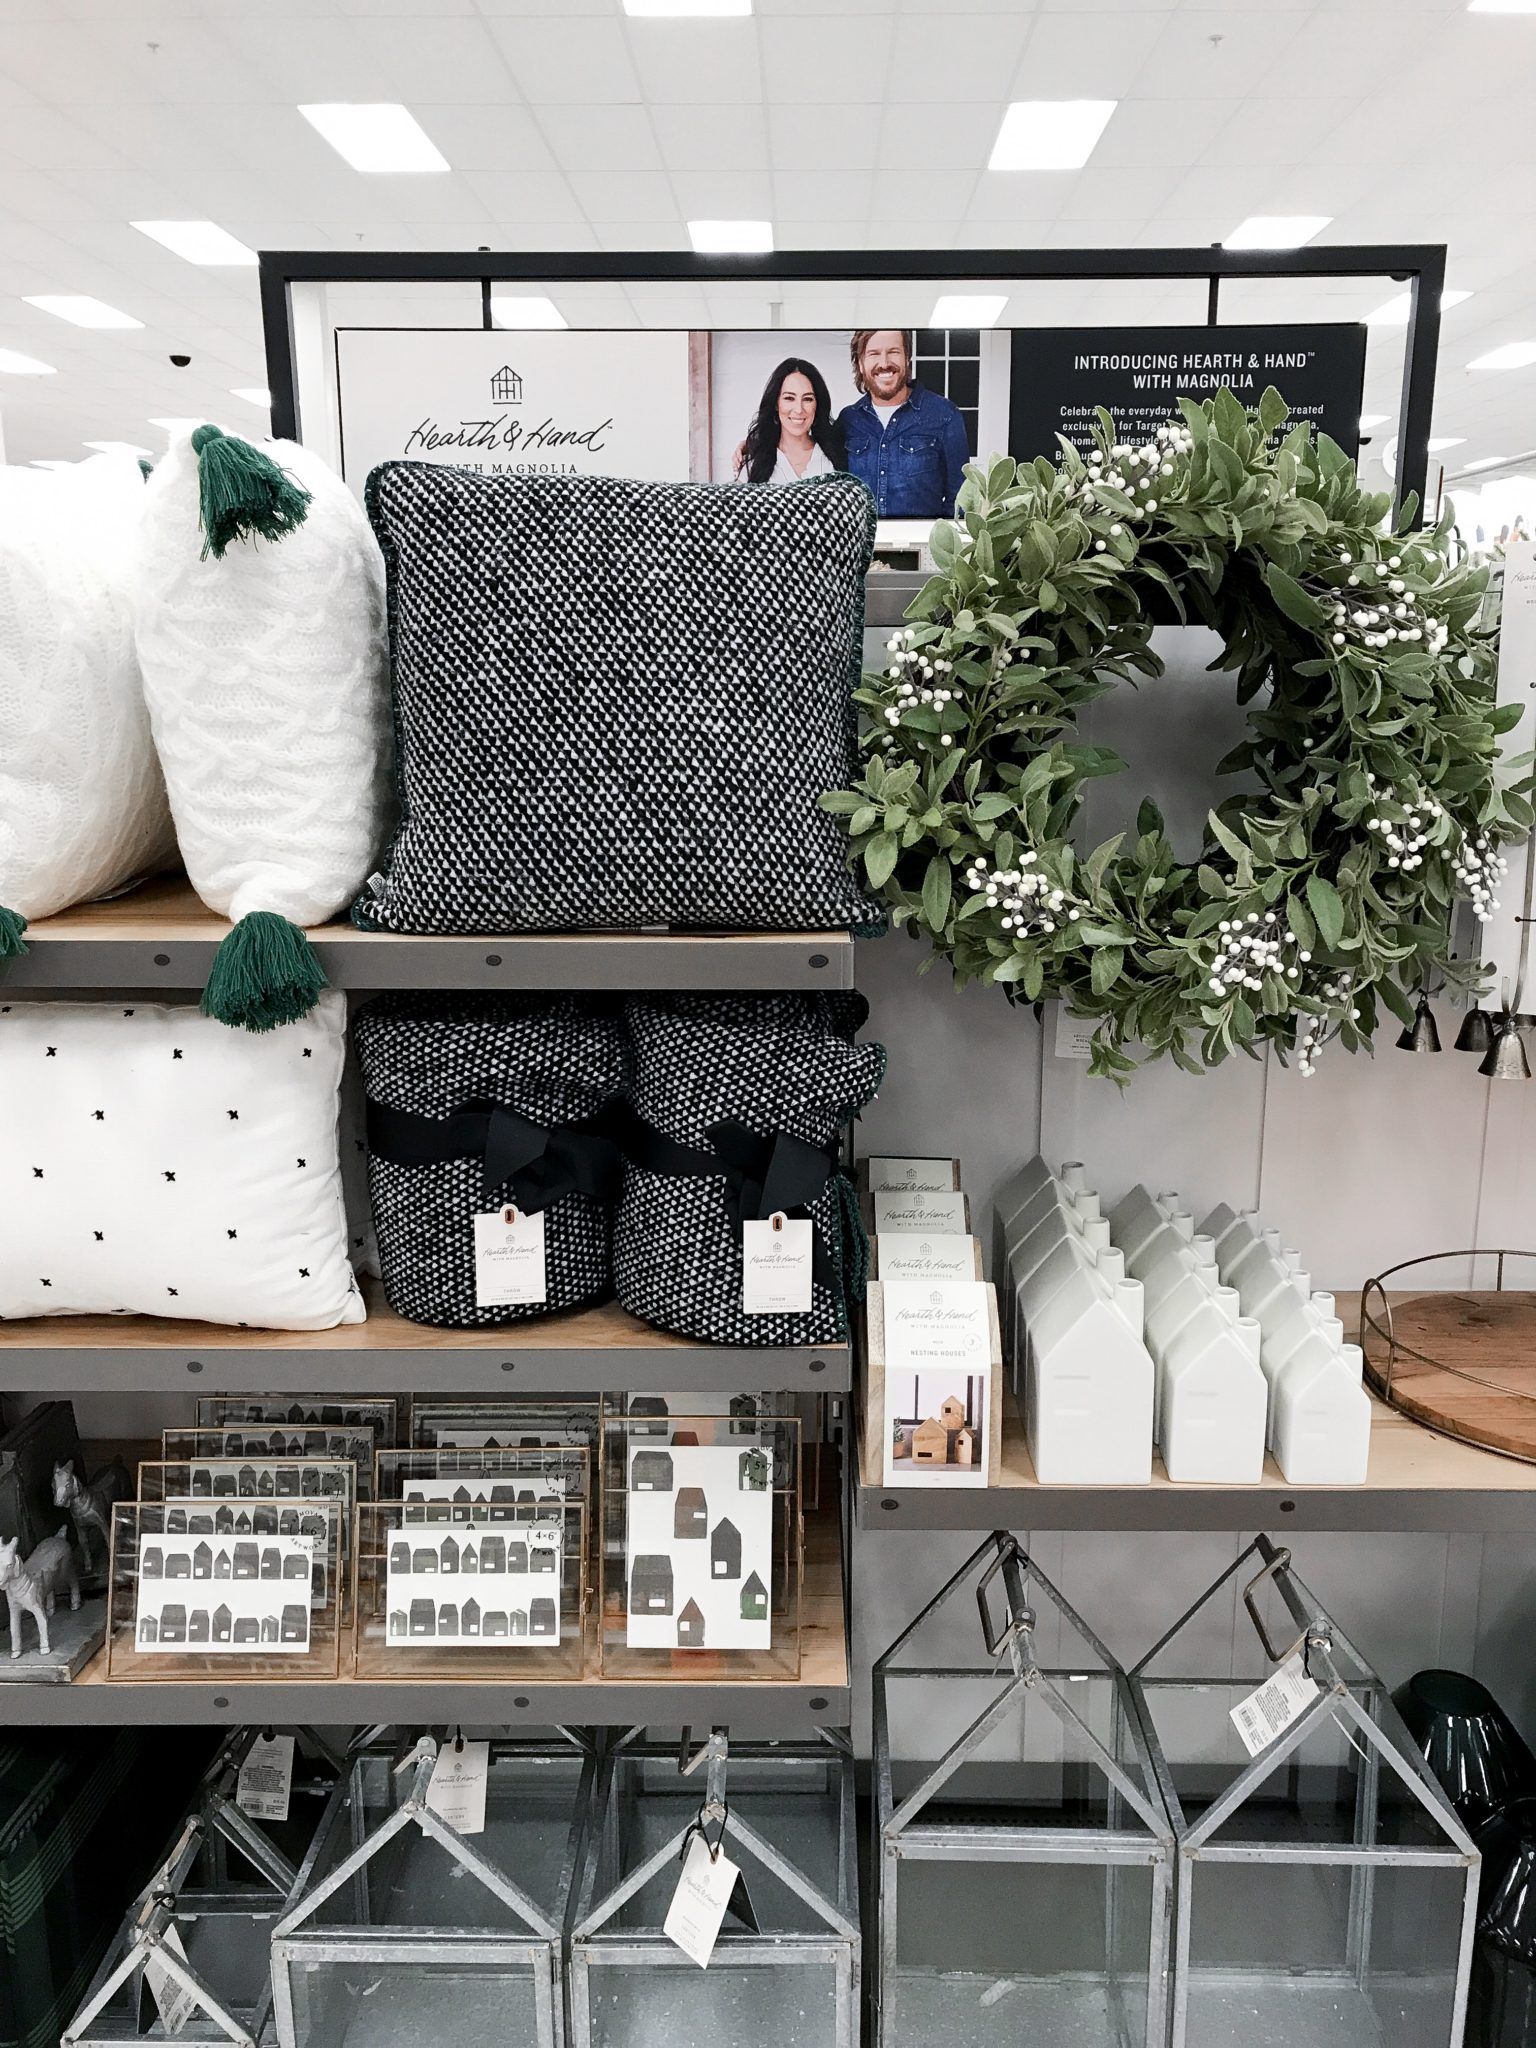 hearth hand with magnolia at target crazy life with littles. Black Bedroom Furniture Sets. Home Design Ideas